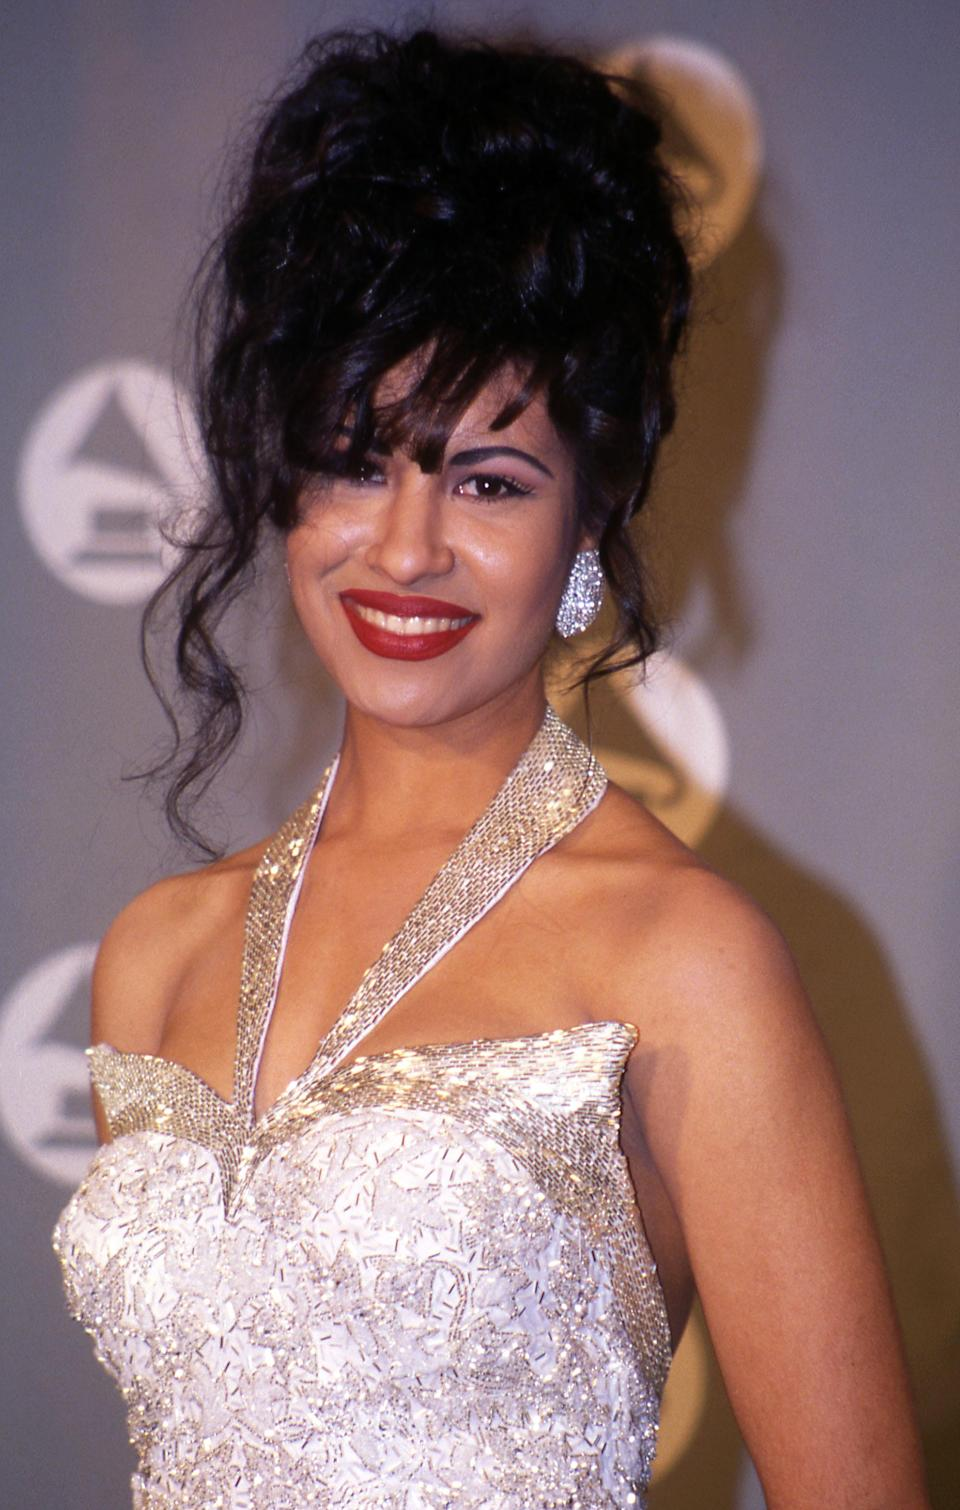 "<p>There's no question that <a href=""https://www.yahoo.com/lifestyle/tagged/selena-quintanilla"" data-ylk=""slk:Selena"" class=""link rapid-noclick-resp"">Selena</a> stood out when she hit the music scene, and it wasn't just because of her embellished bustiers, either. The Mexican singer always sported a bold <a href=""https://www.yahoo.com/lifestyle/tagged/red-lipstick"" data-ylk=""slk:red lip"" class=""link rapid-noclick-resp"">red lip</a> — Chanel's now-discontinued Brick hue — along with liquid liner, bold brows, and full bangs, a look that's cemented in the hearts of her fans long after her tragic passing. In fact, it was the bold look and the love from her fans that led <a href=""https://www.yahoo.com/lifestyle/see-the-lipstick-from-the-selena-quintanilla-214523183.html"" data-ylk=""slk:MAC to release a limited-edition collection;outcm:mb_qualified_link;_E:mb_qualified_link;ct:story;"" class=""link rapid-noclick-resp yahoo-link"">MAC to release a limited-edition collection</a> honoring the Tejano music legend that sold out not once but twice. (Photo: Getty Images) </p>"